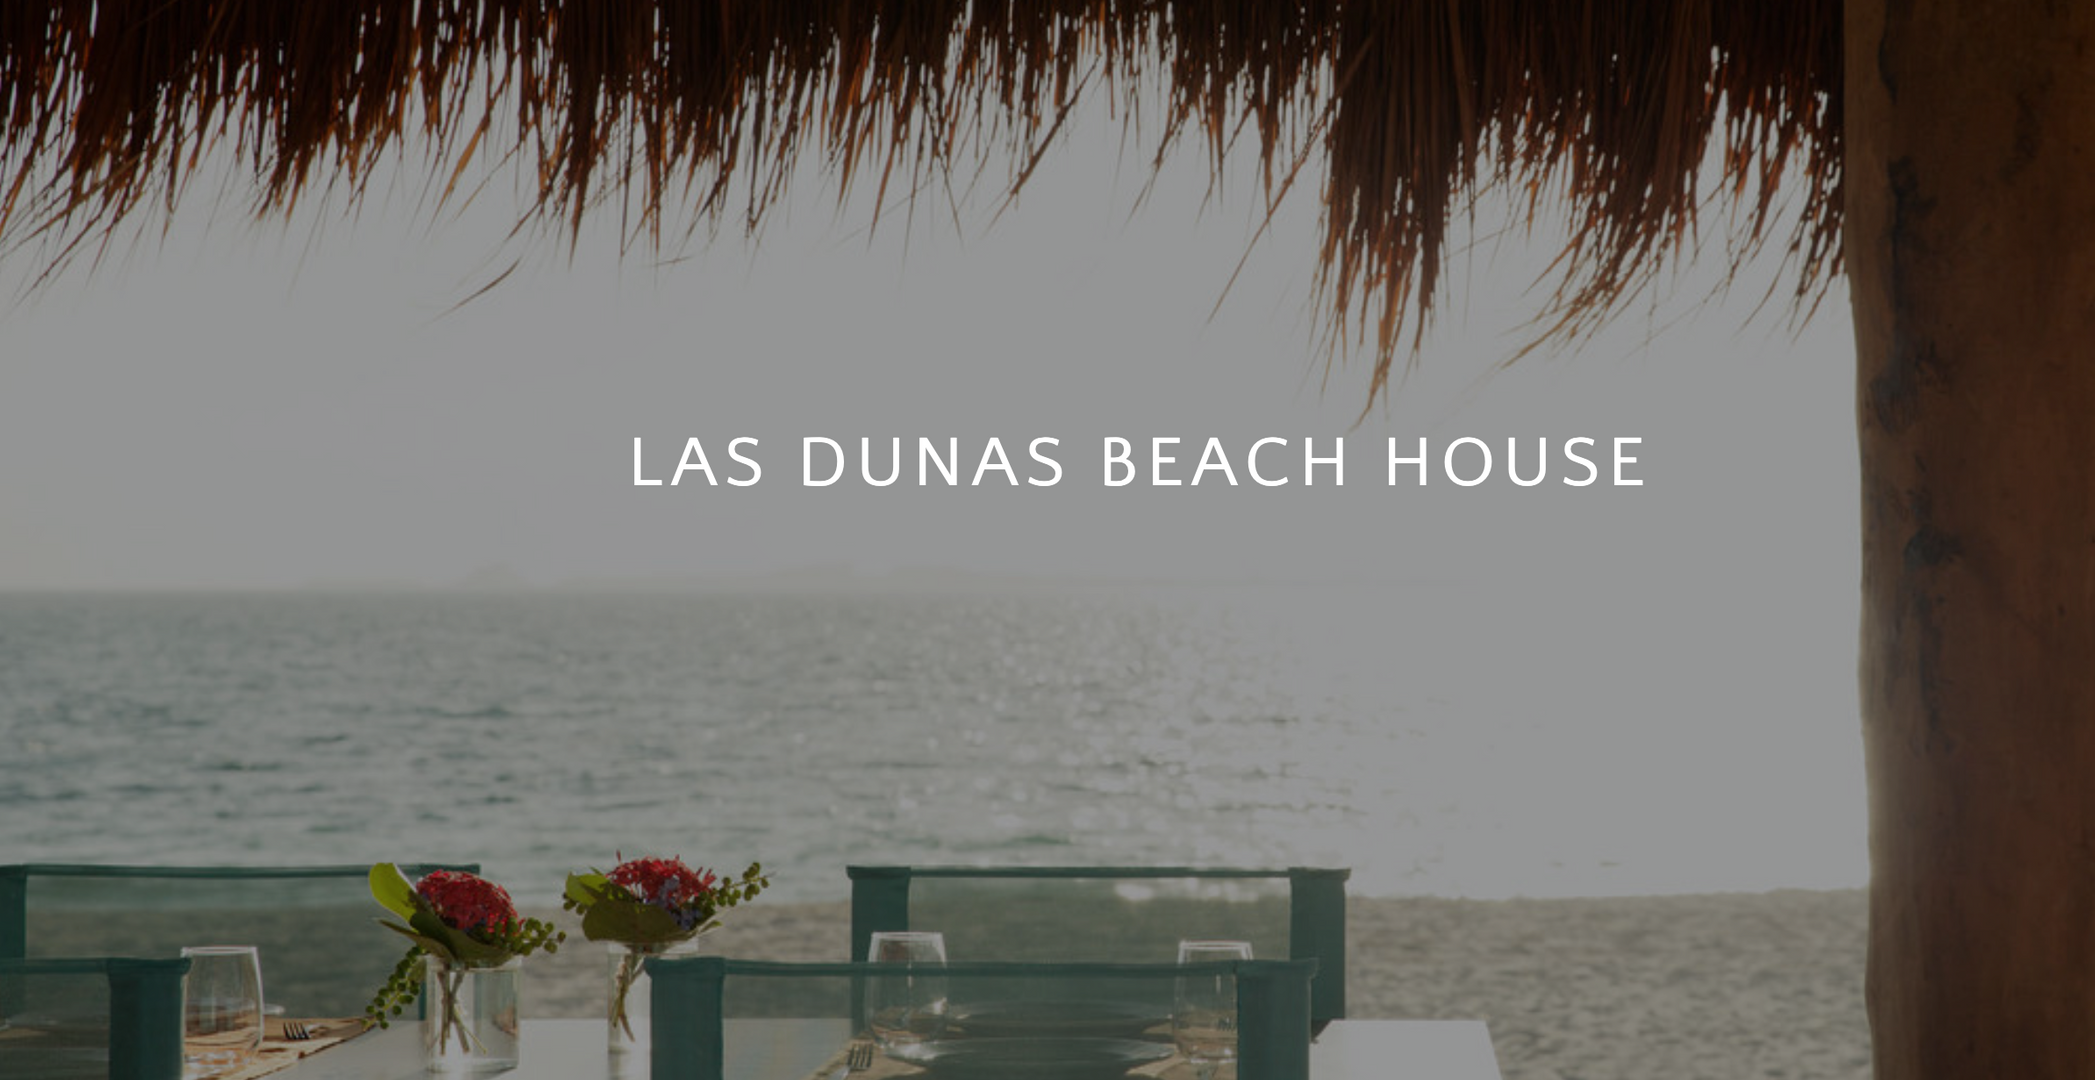 LAS DUNAS BEACH HOUSE